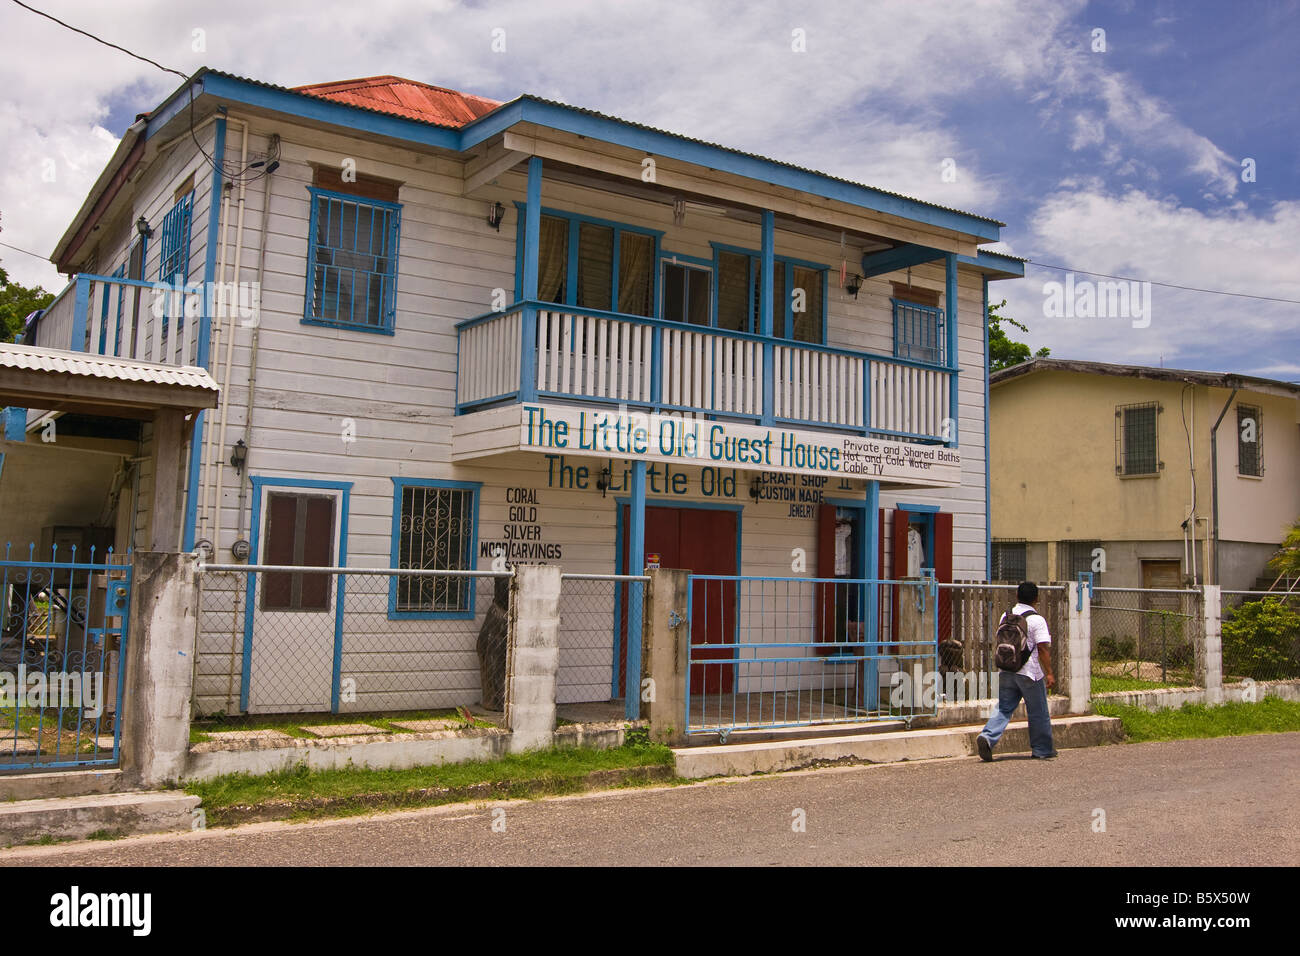 SAN IGNACIO, BELIZE - Street scene on Burns Avenue - Stock Image